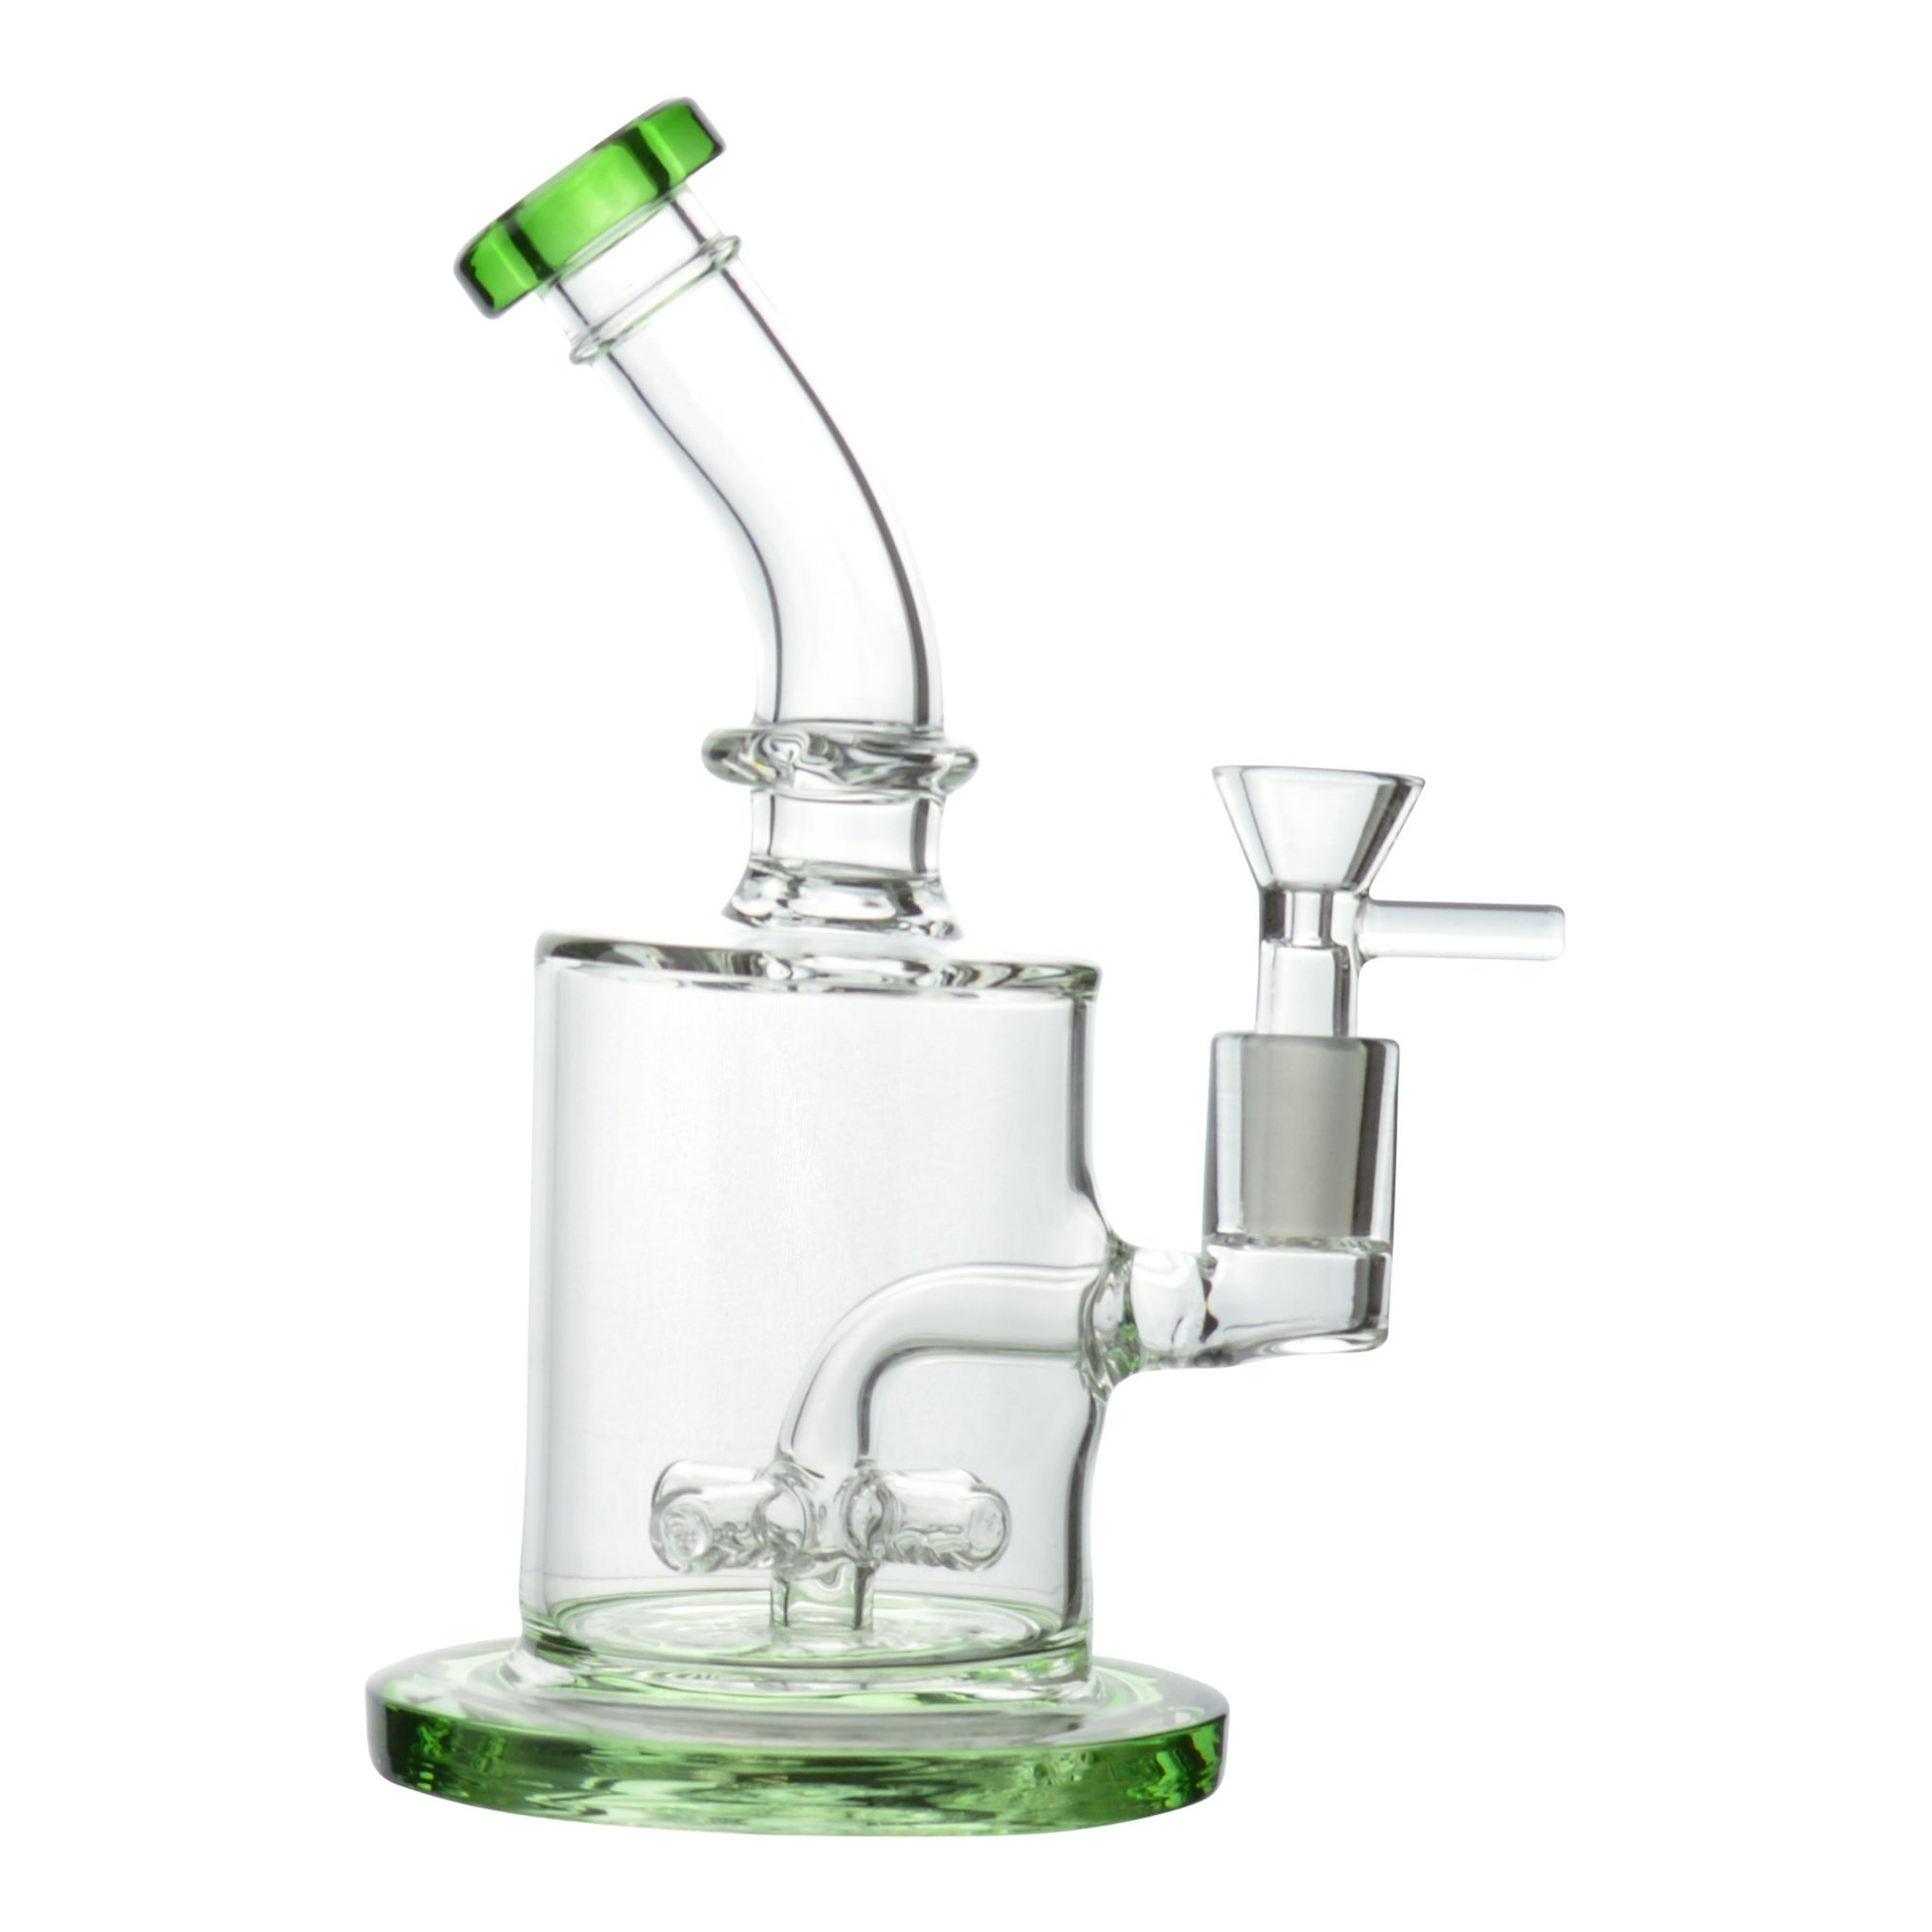 Nano Inline Percolator Bong - 8in